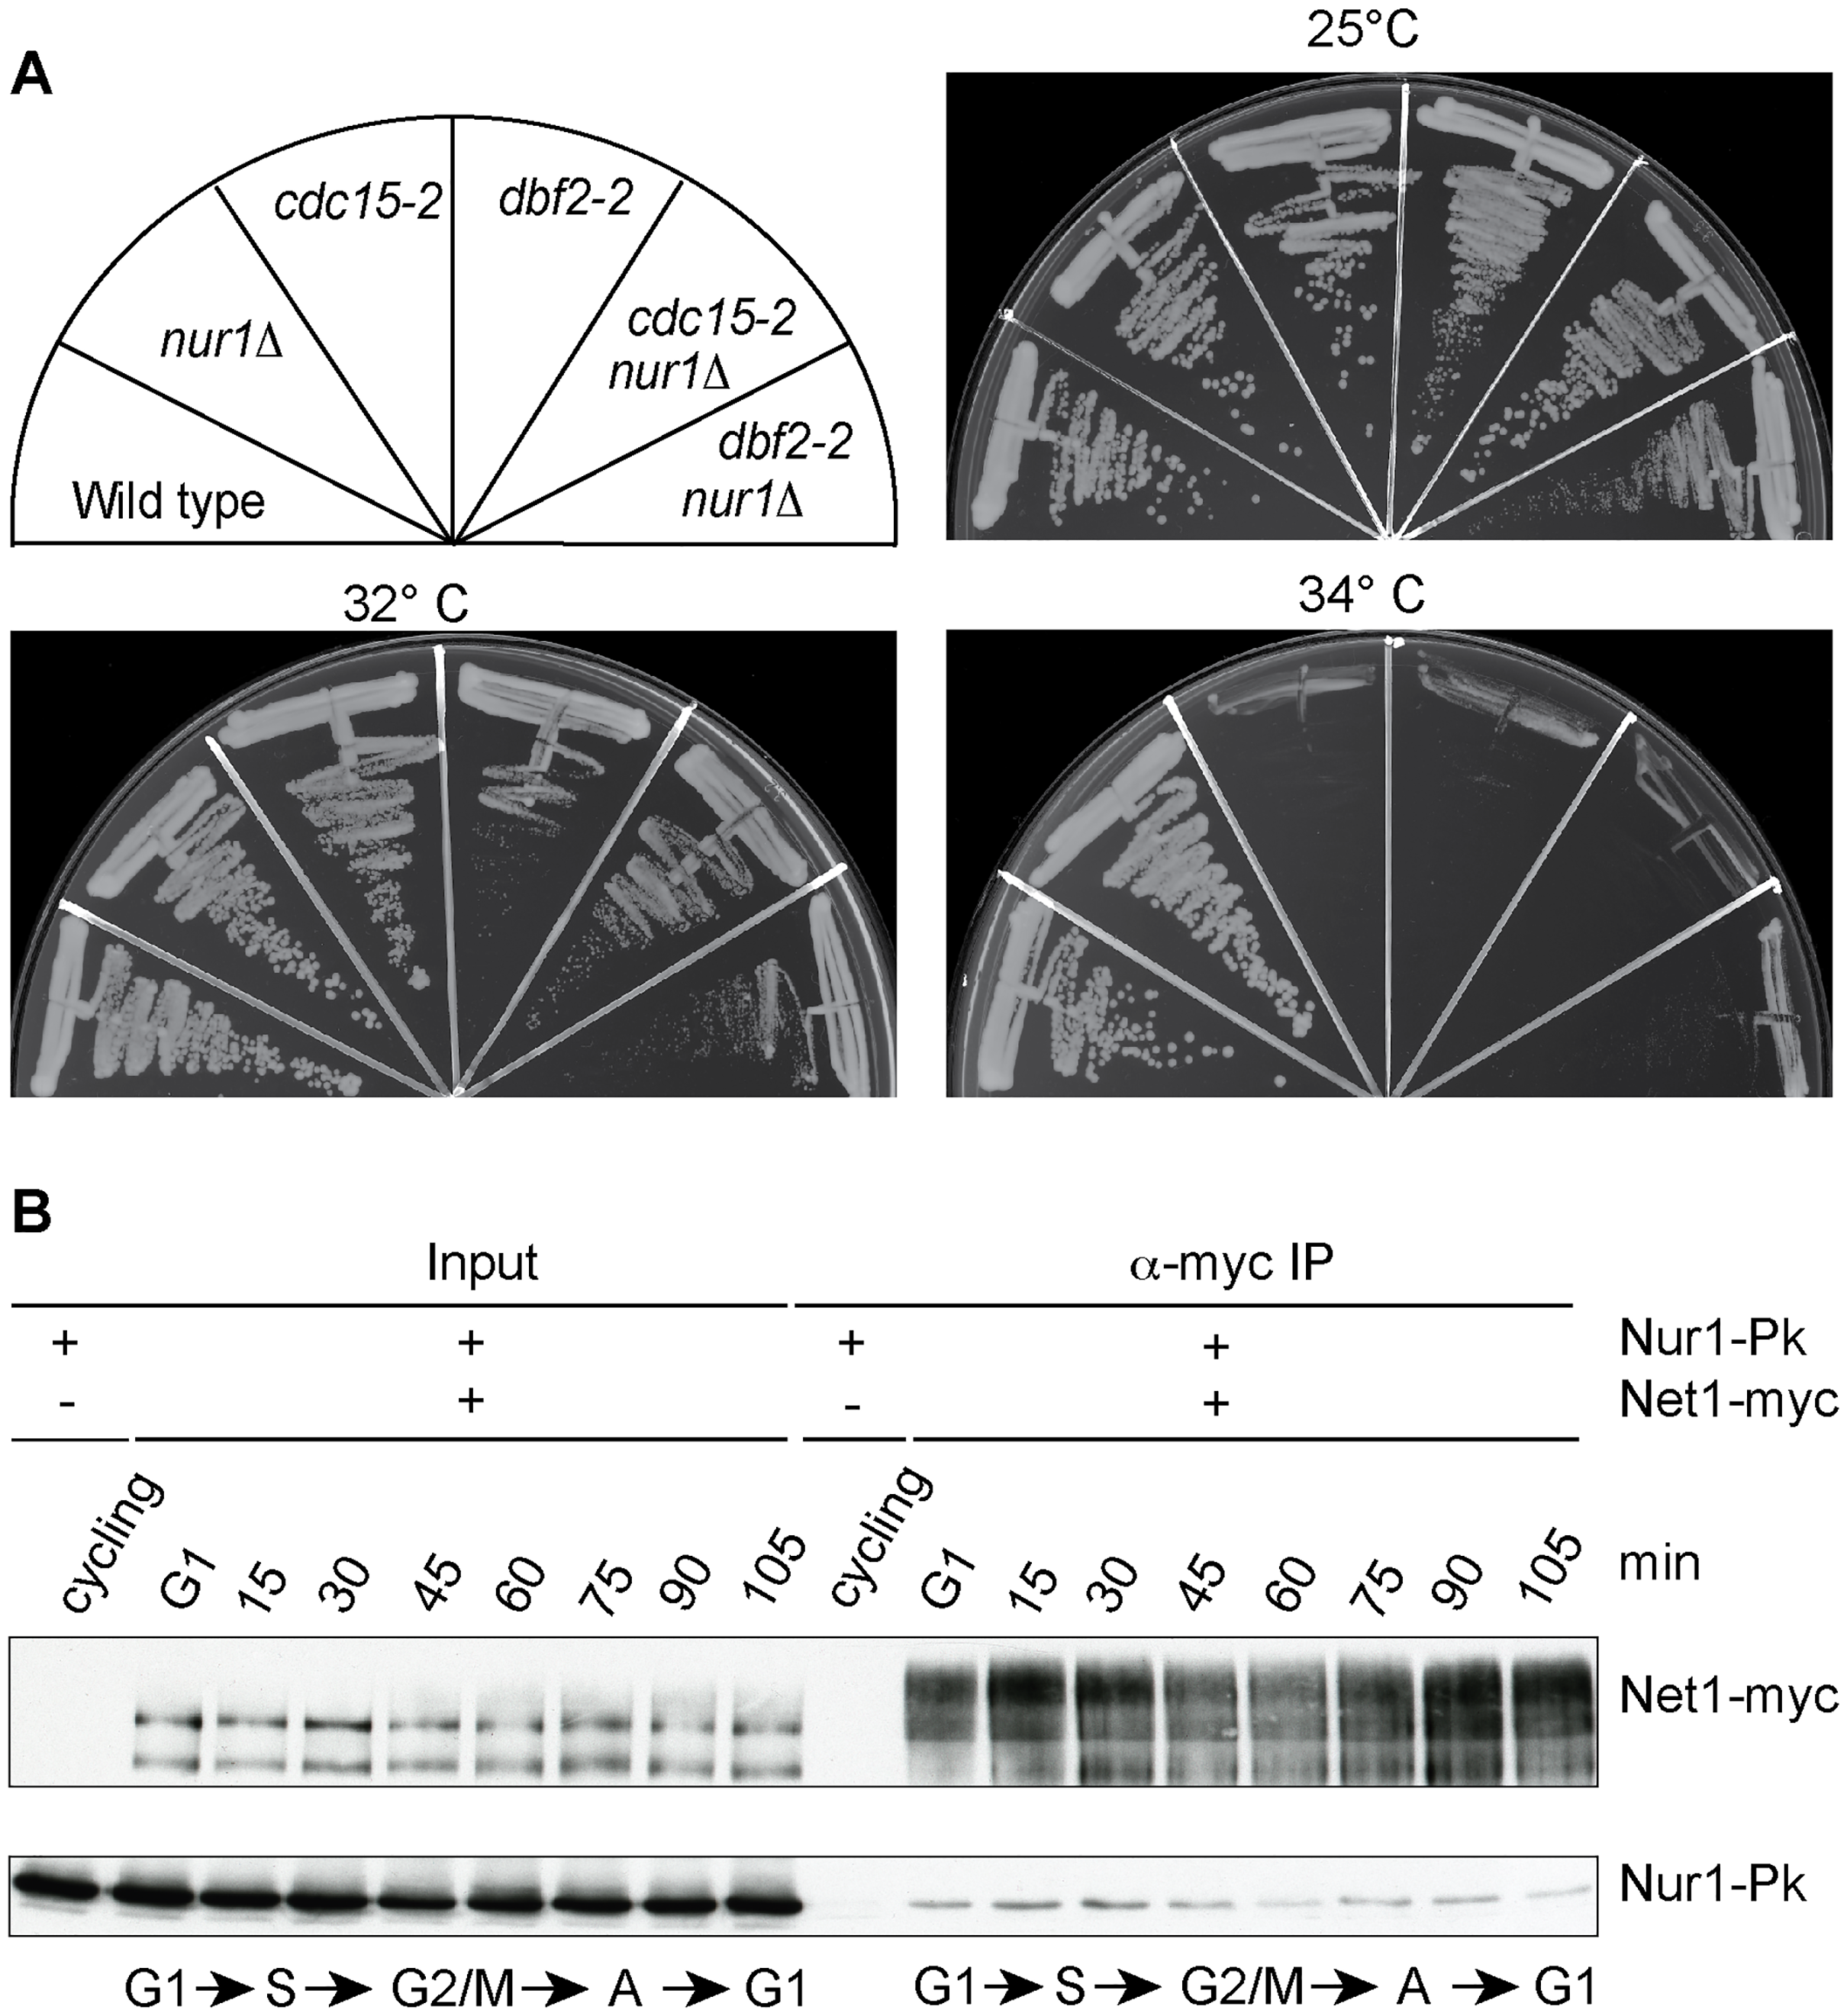 Nur1 acts in early anaphase and interacts with Net1.